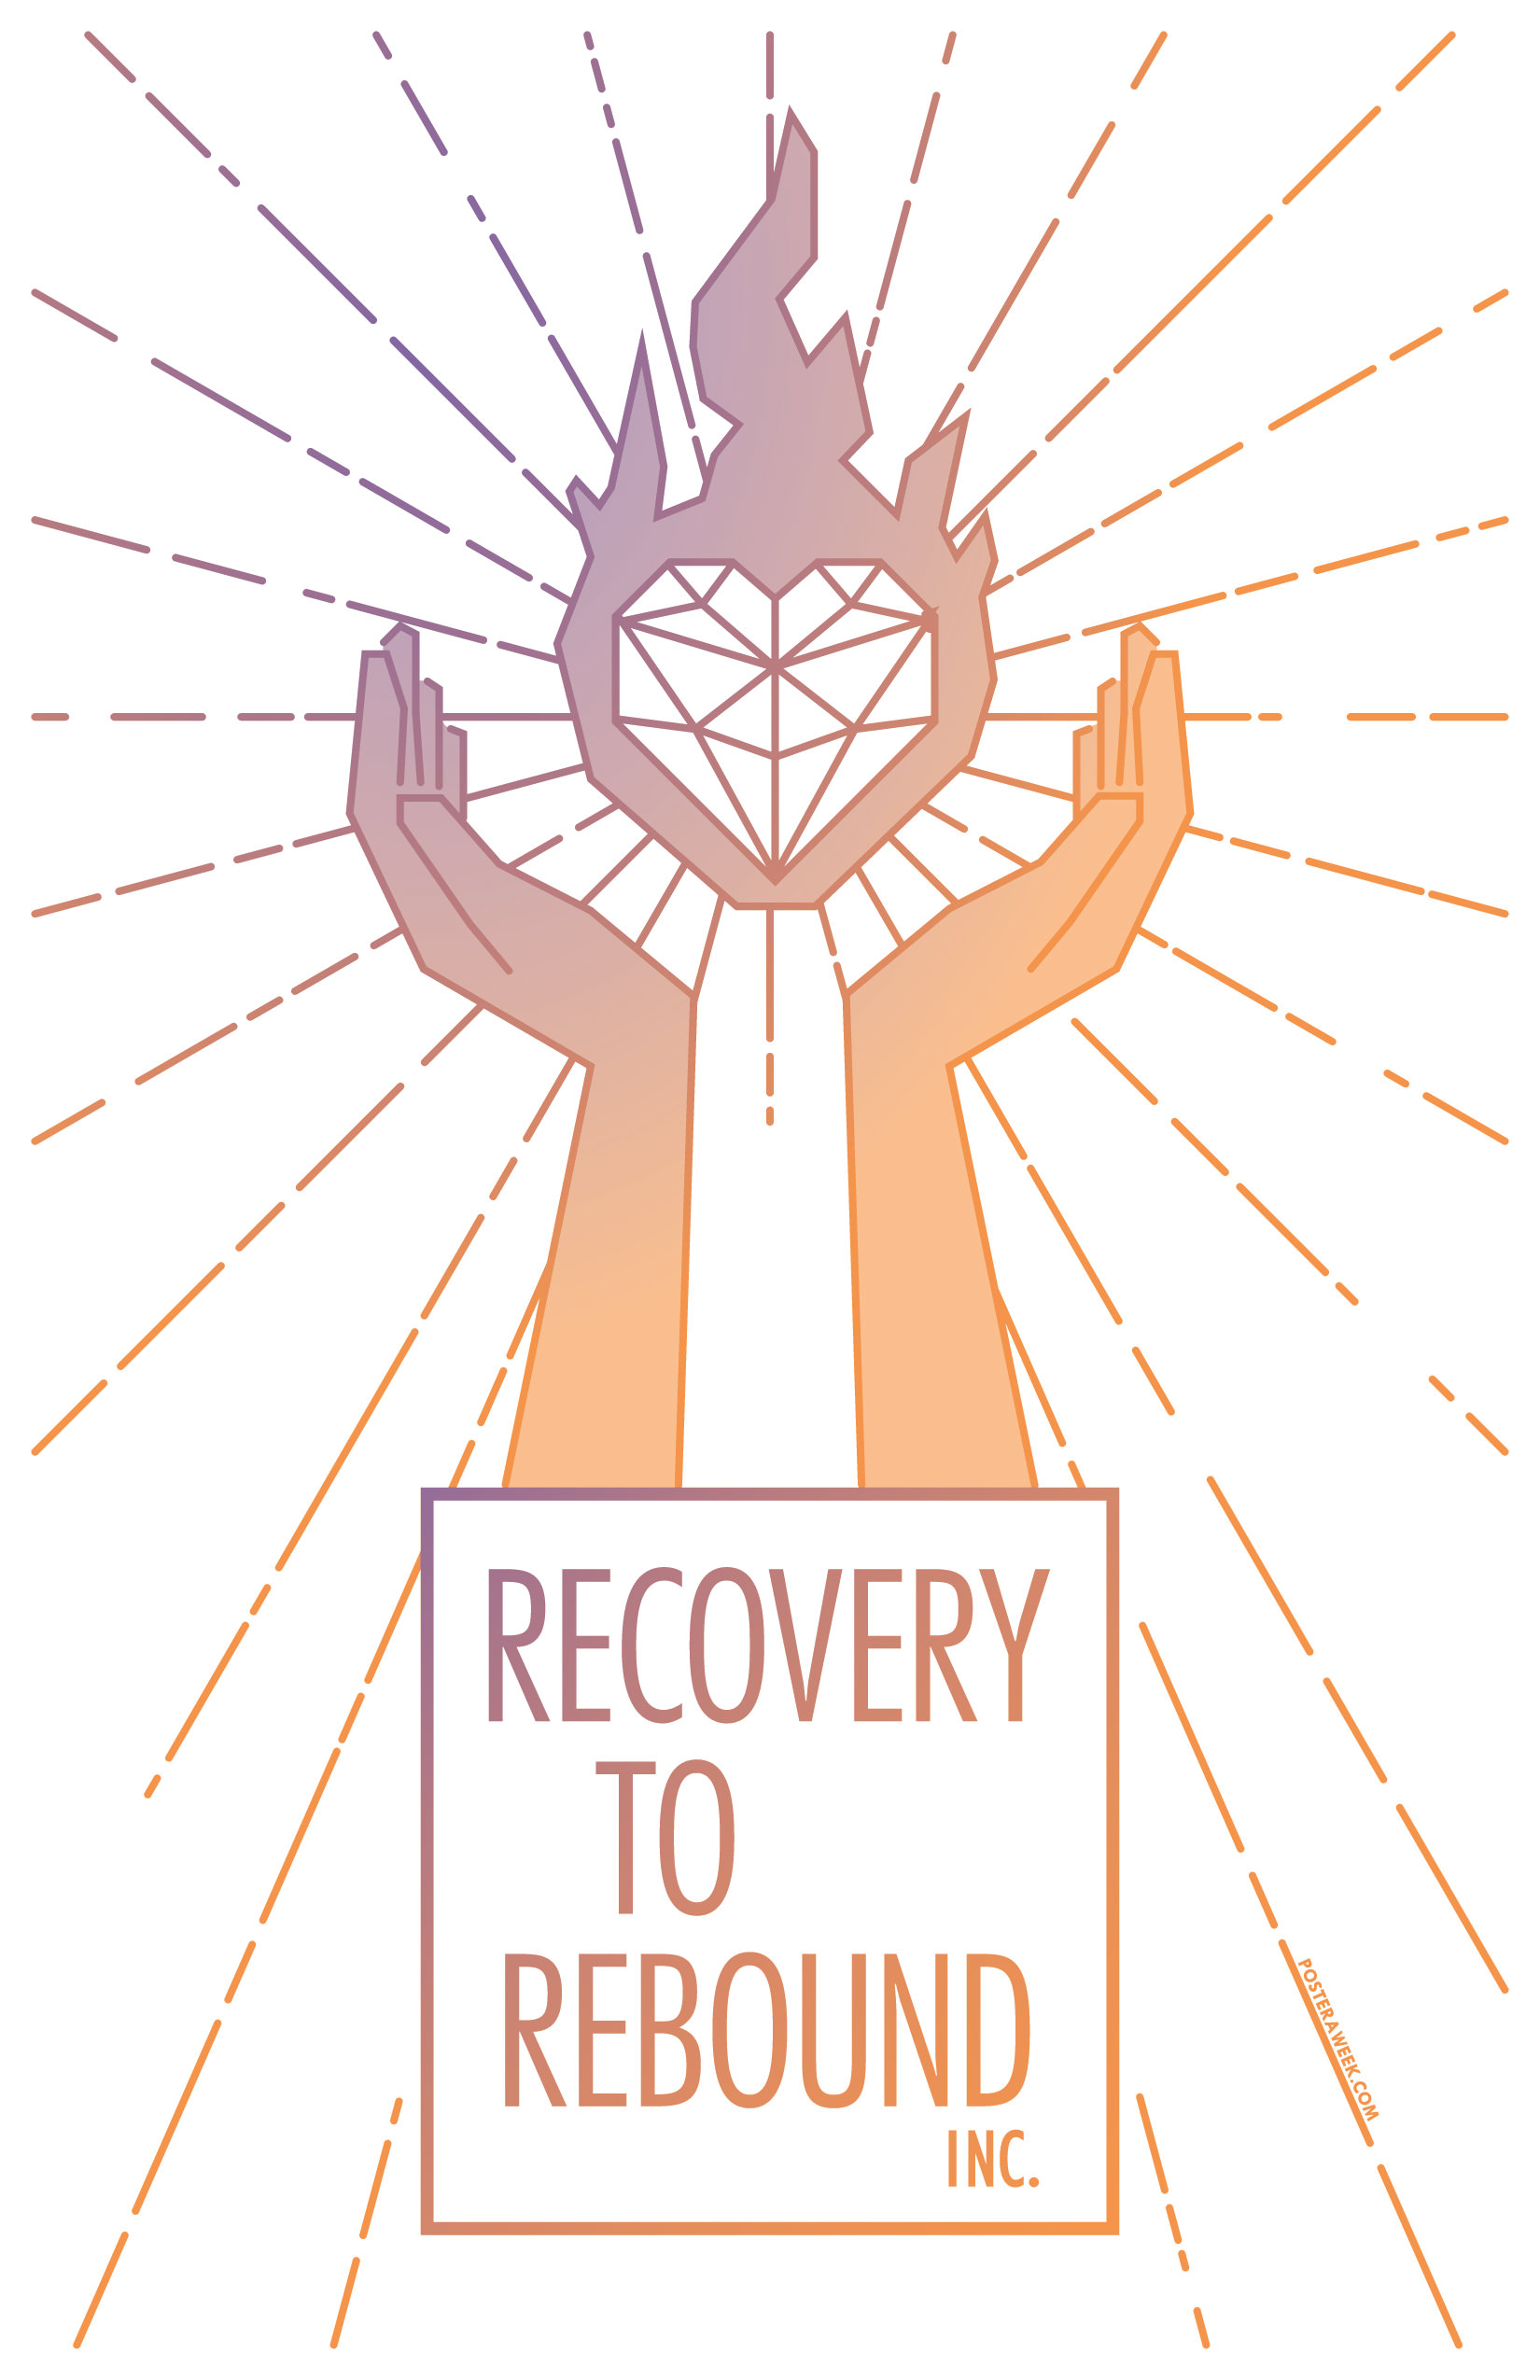 Poster a Week Free Posters Online - This Week: Recovery to Rebound